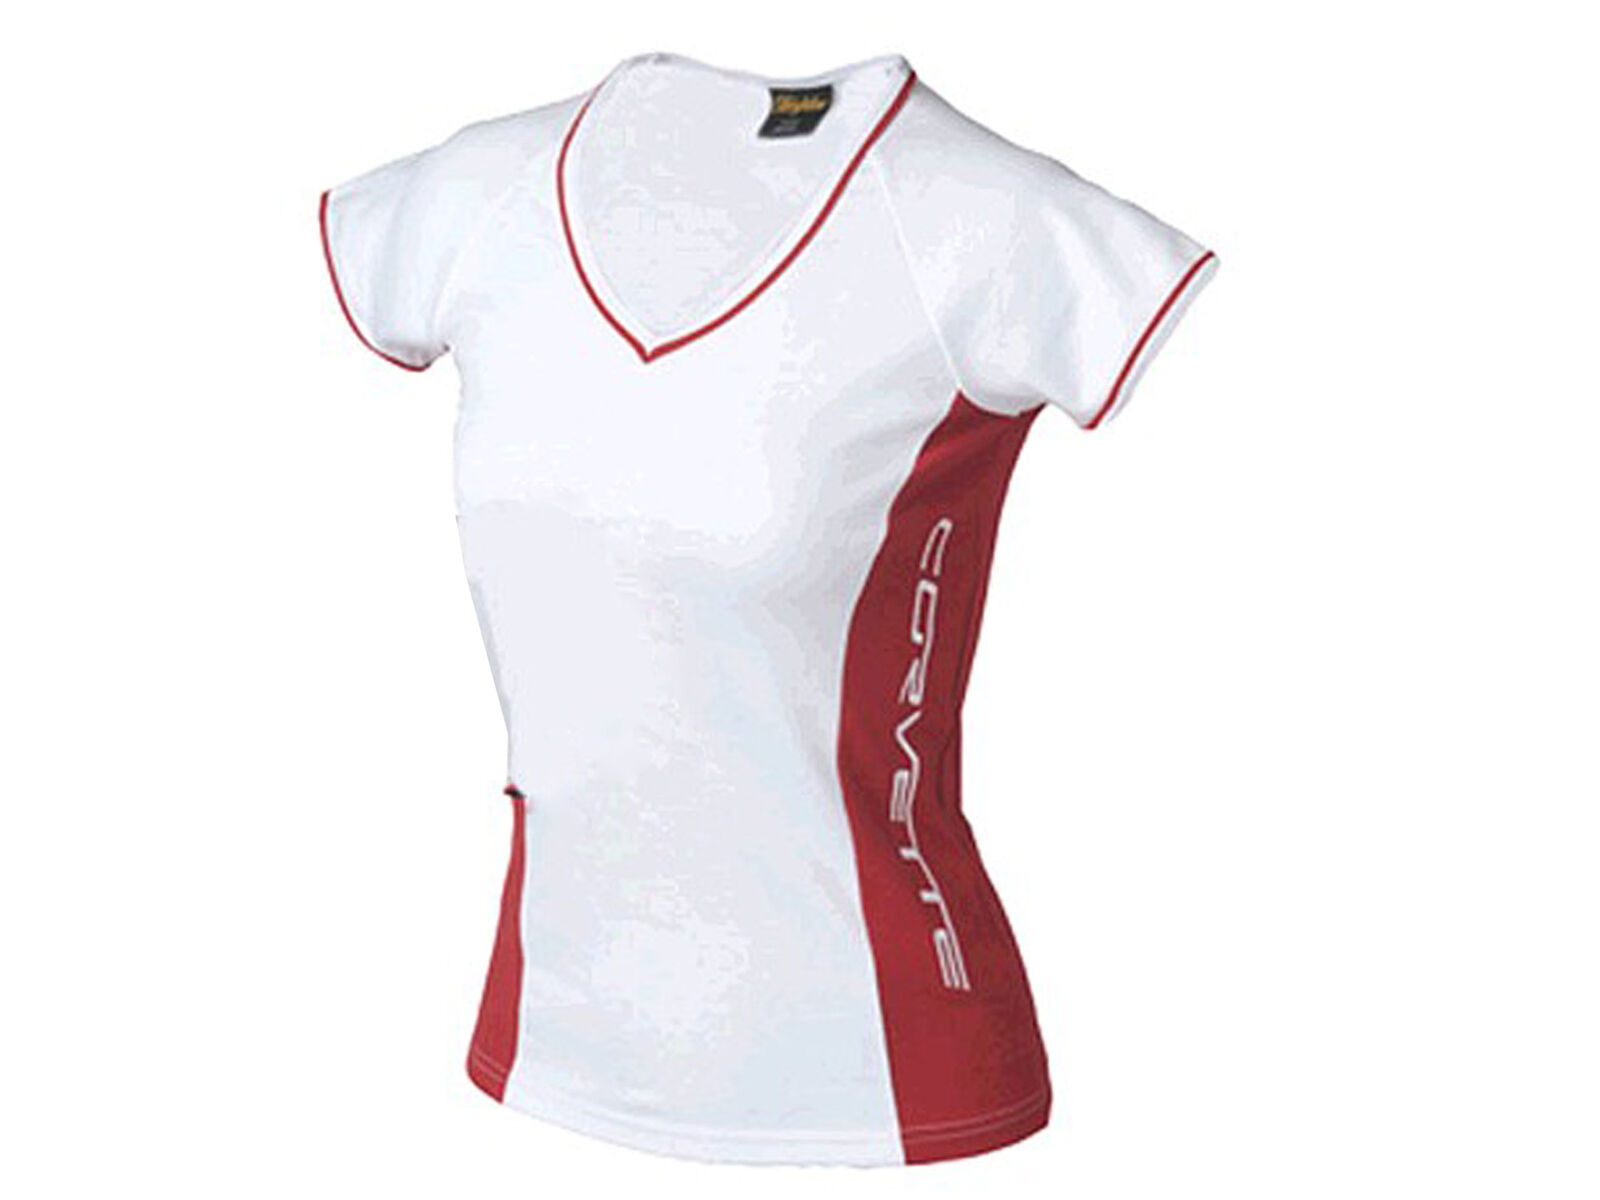 Corvette Embroidered Juniors T-Shirt White and Red Contrast